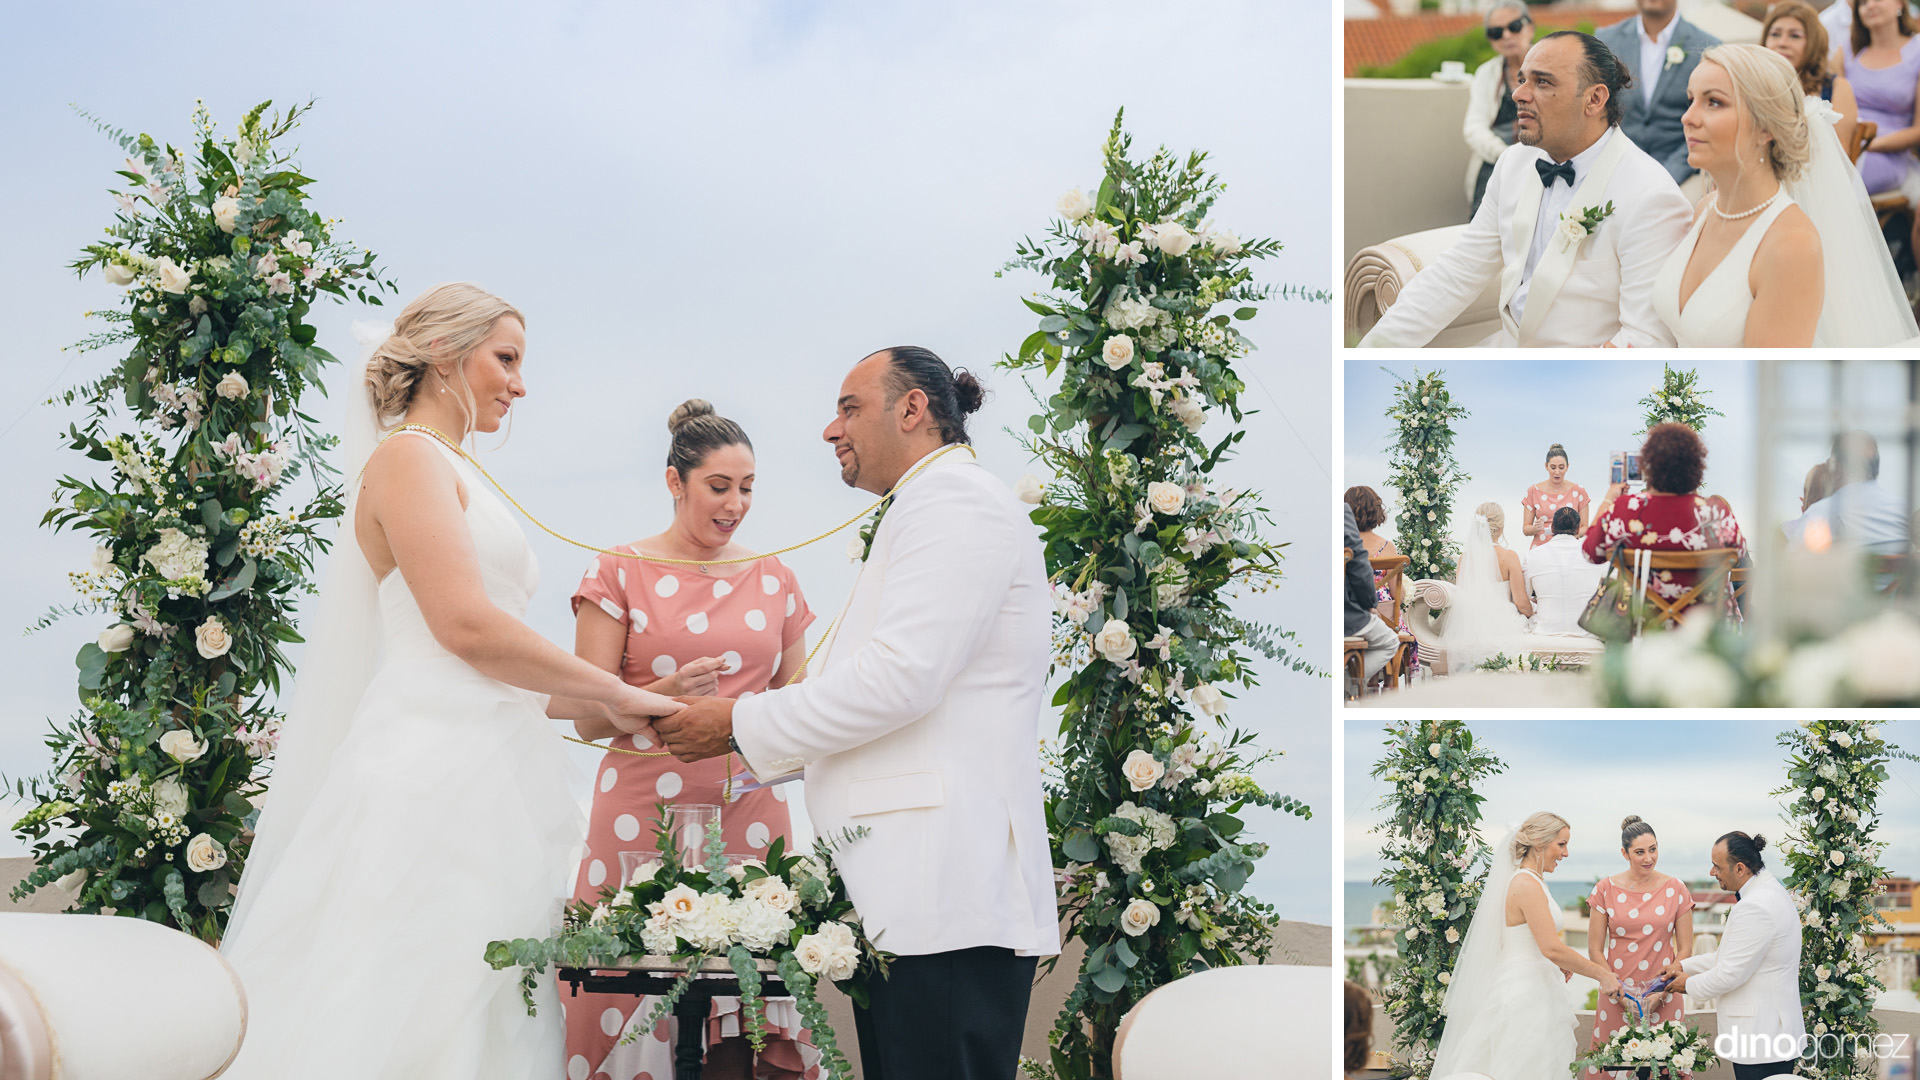 Luxury Wedding Ceremony At The Rooftop Hotel Bastion - St